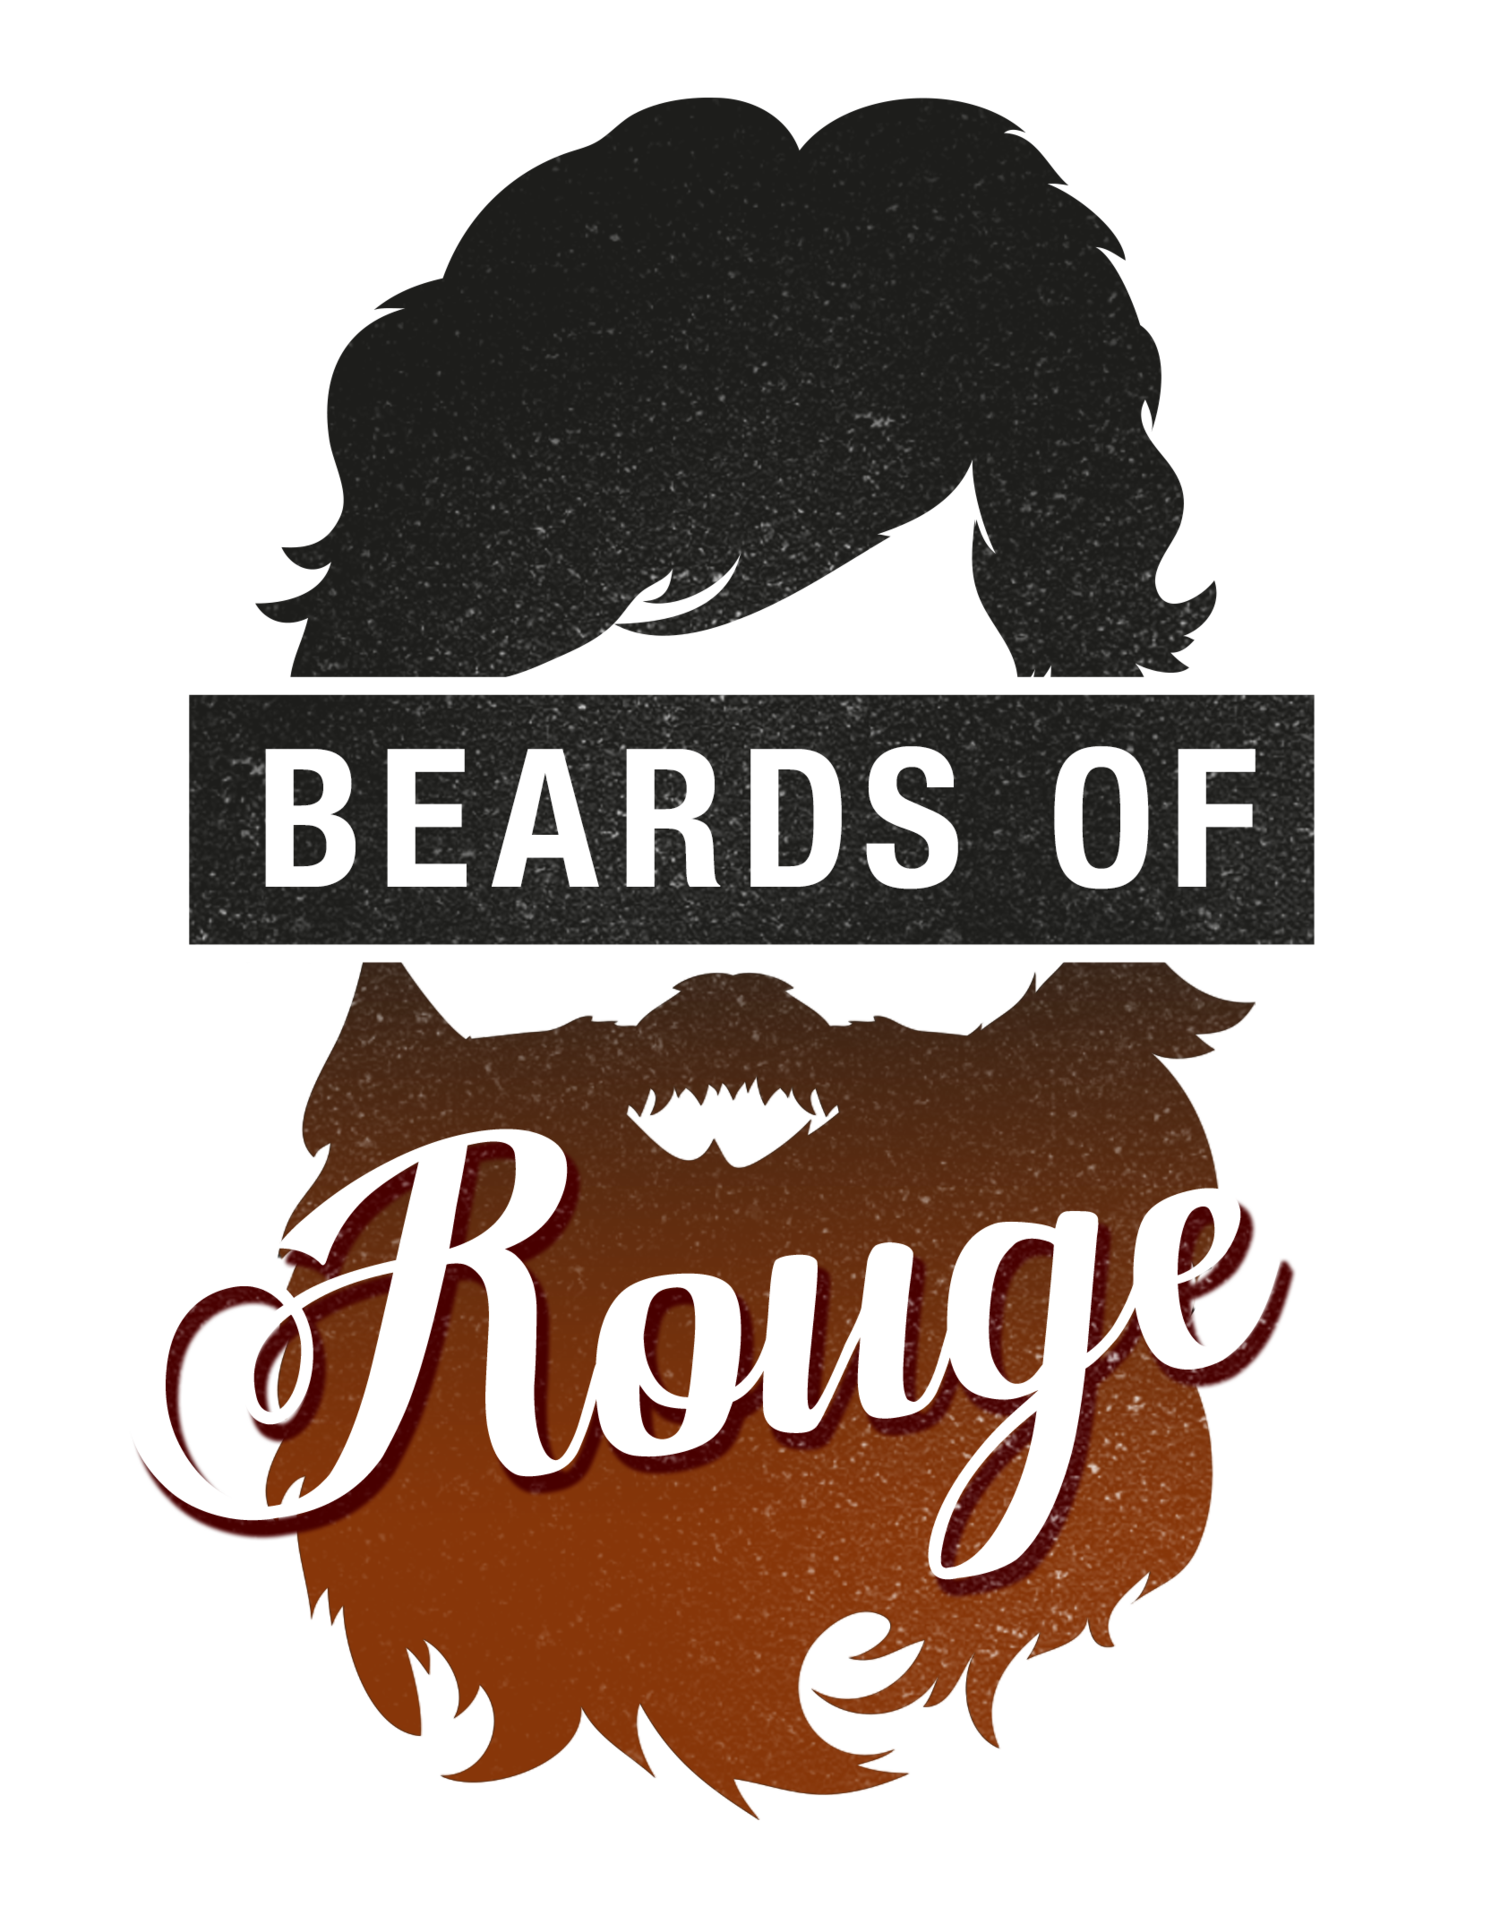 Beards of Rouge